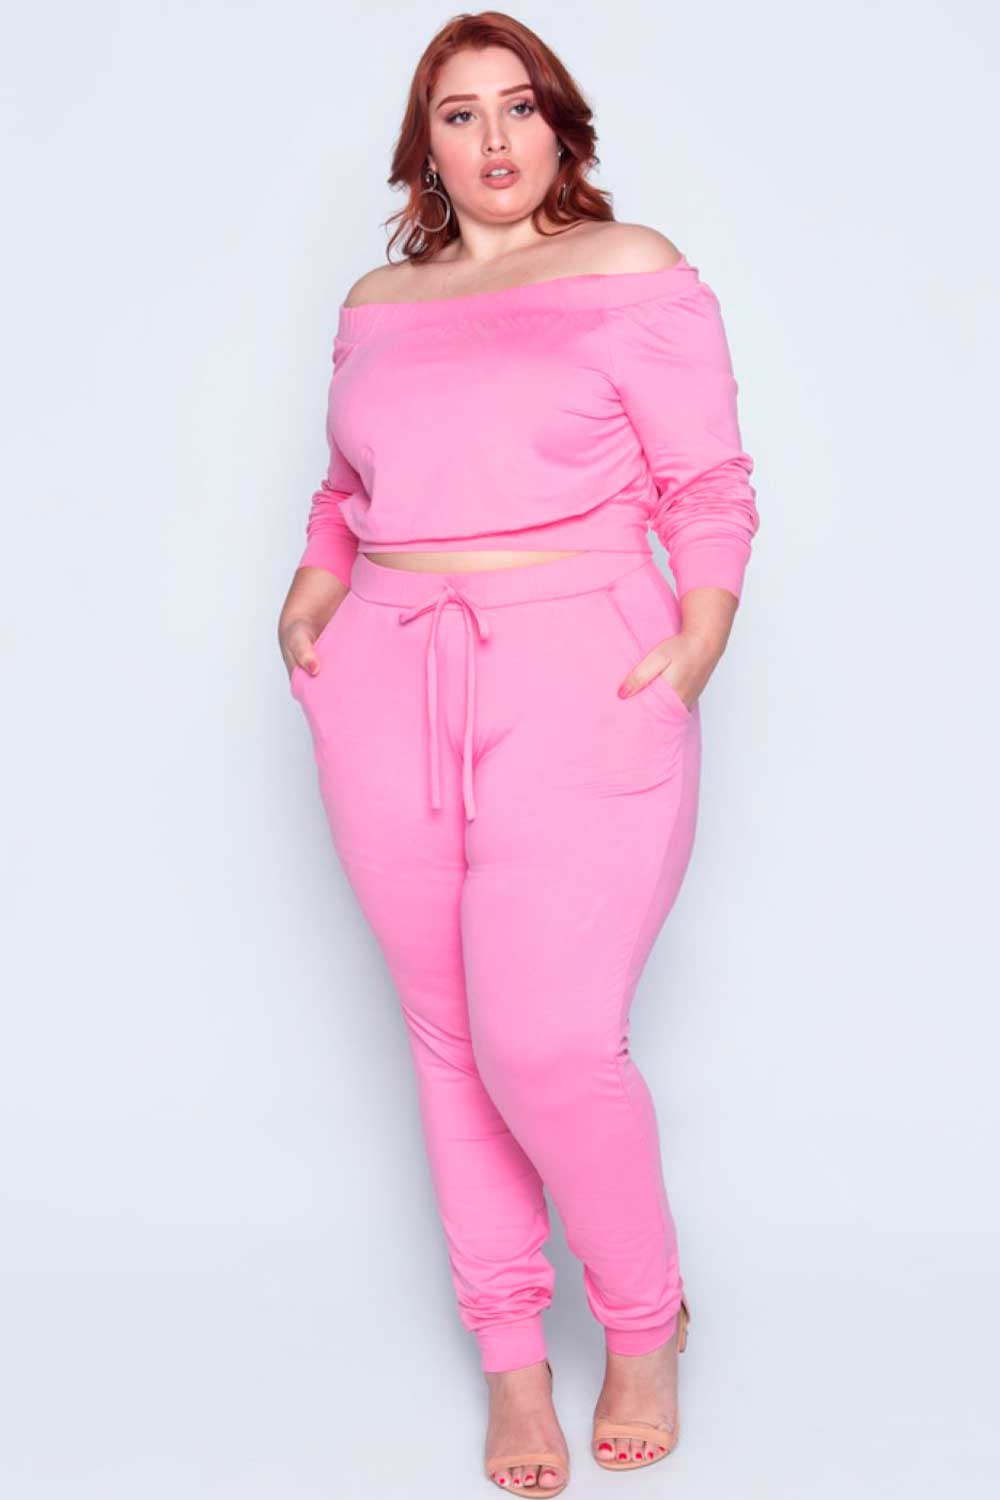 KYL18950_Blusa_Plus_Size_Cropped_Ombro_A_Ombro_ROSA_4